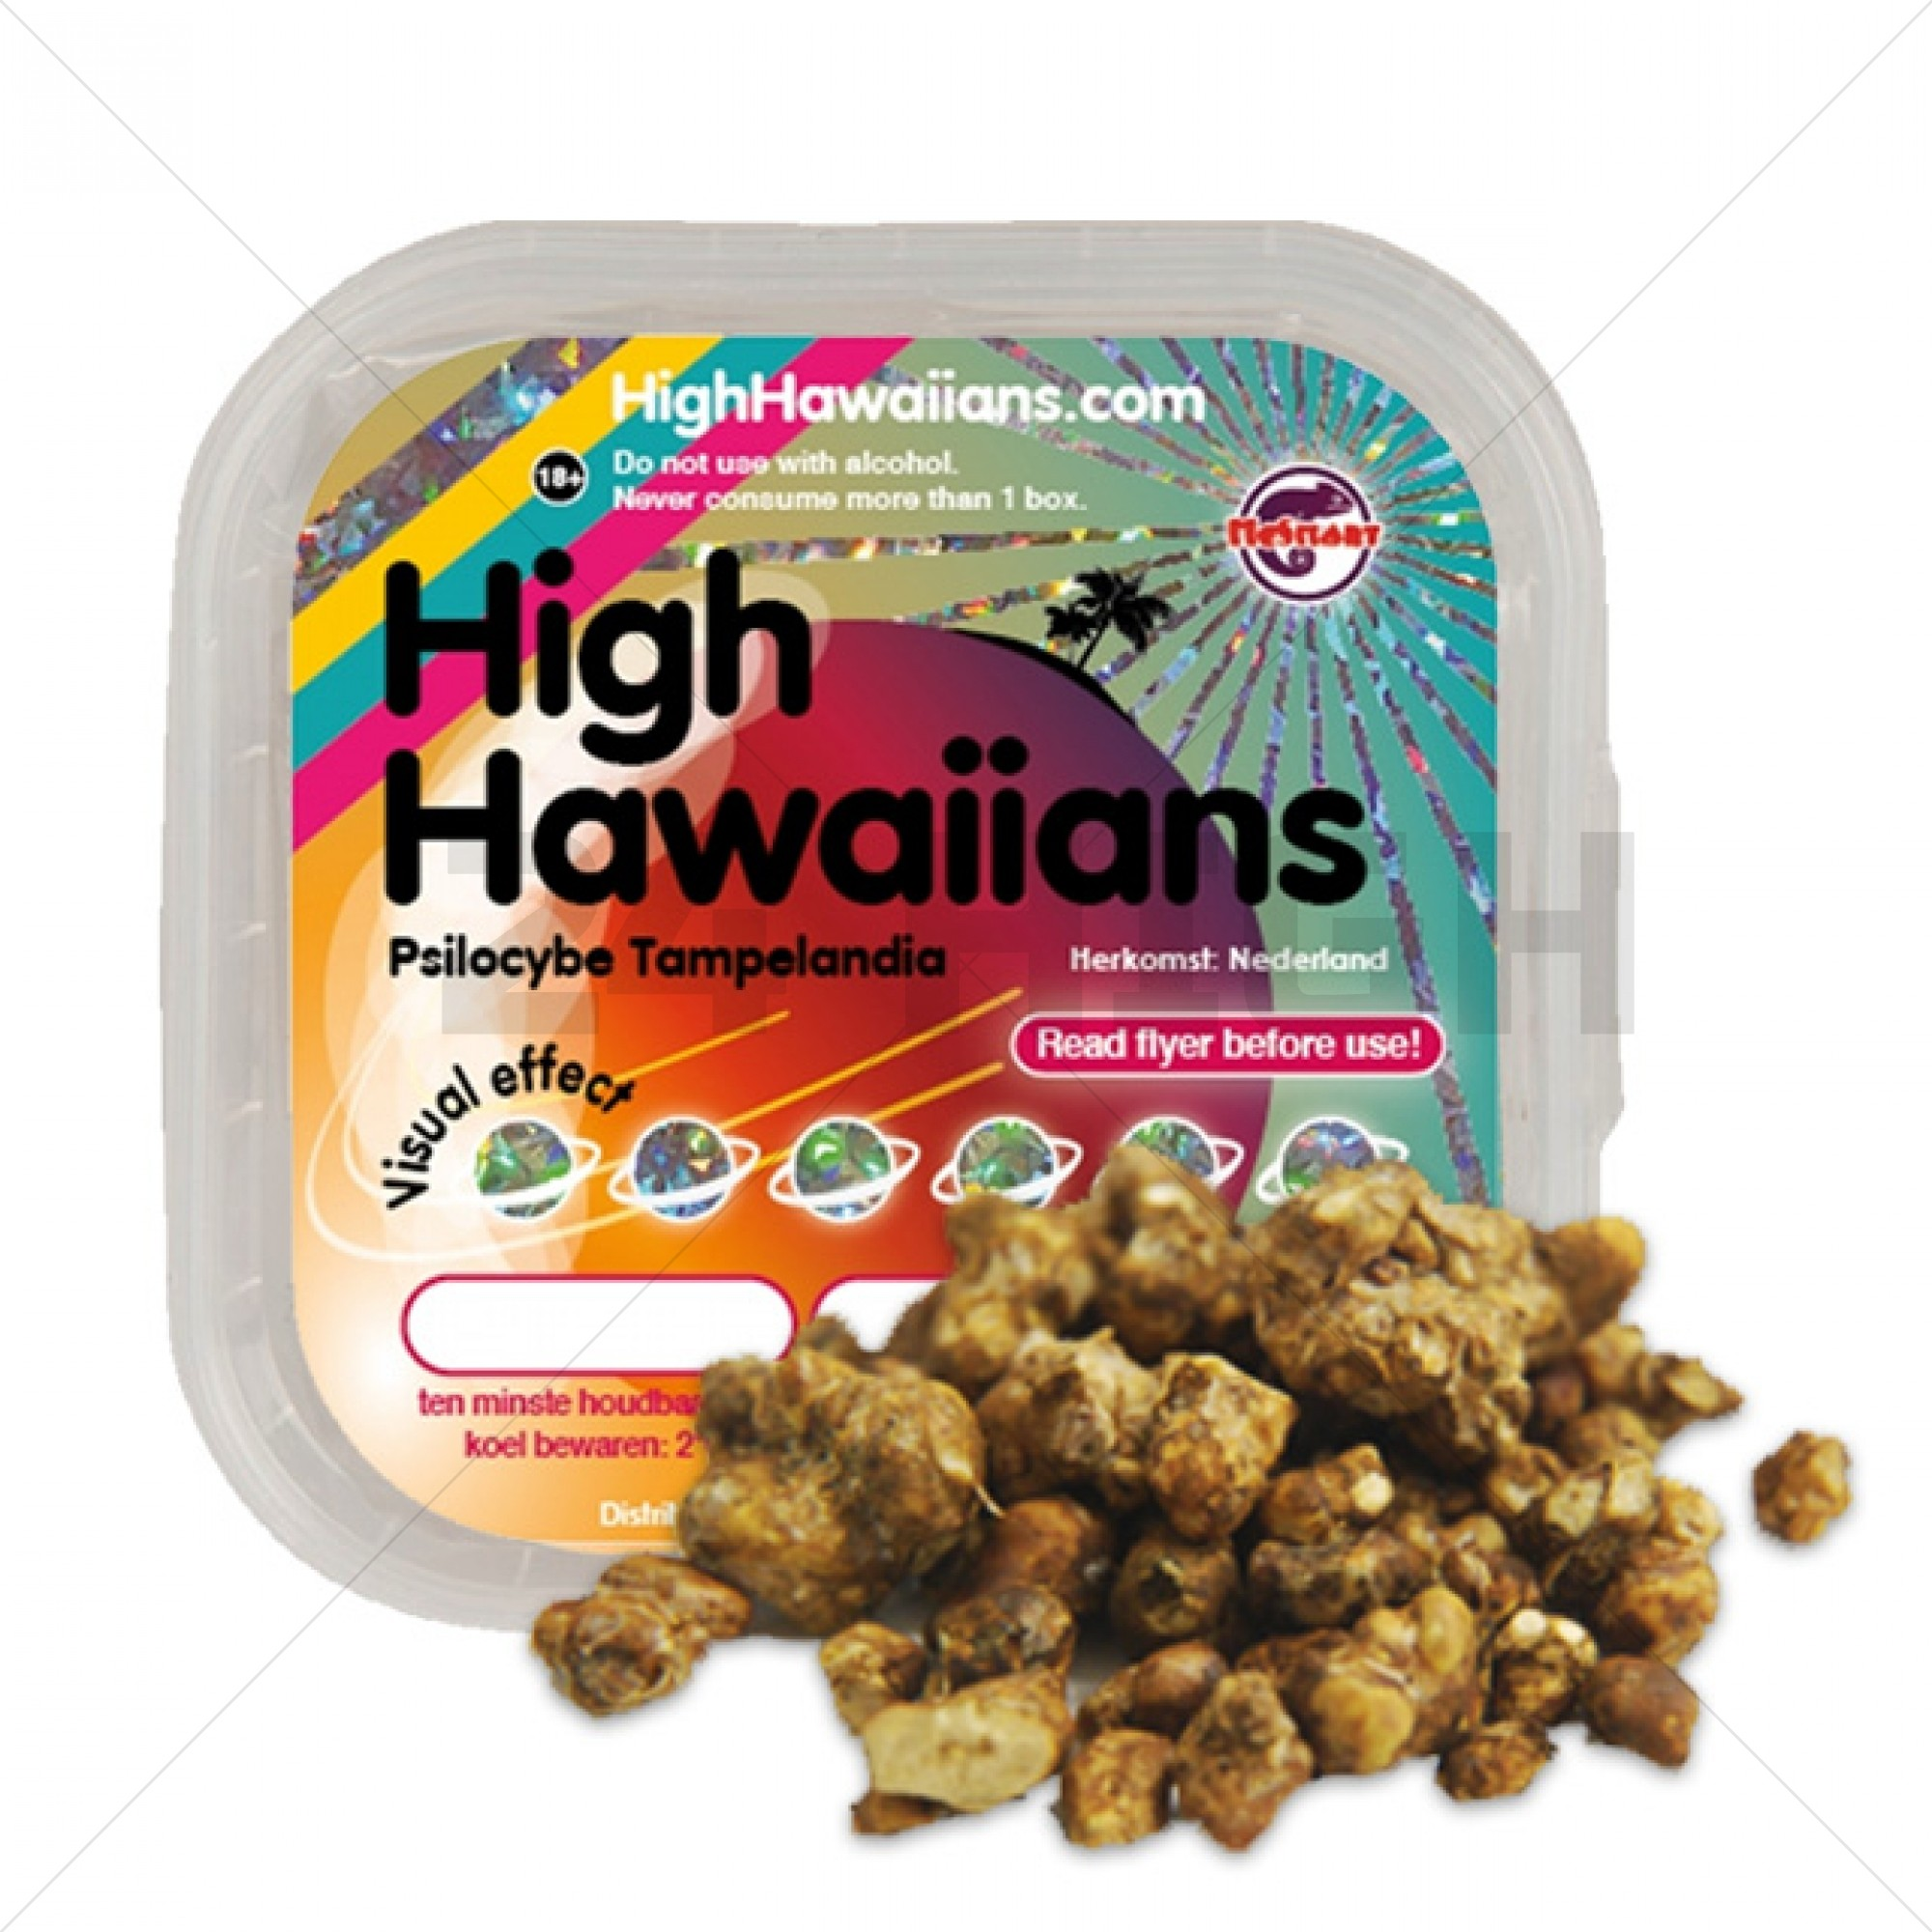 High Hawaiians Truffles